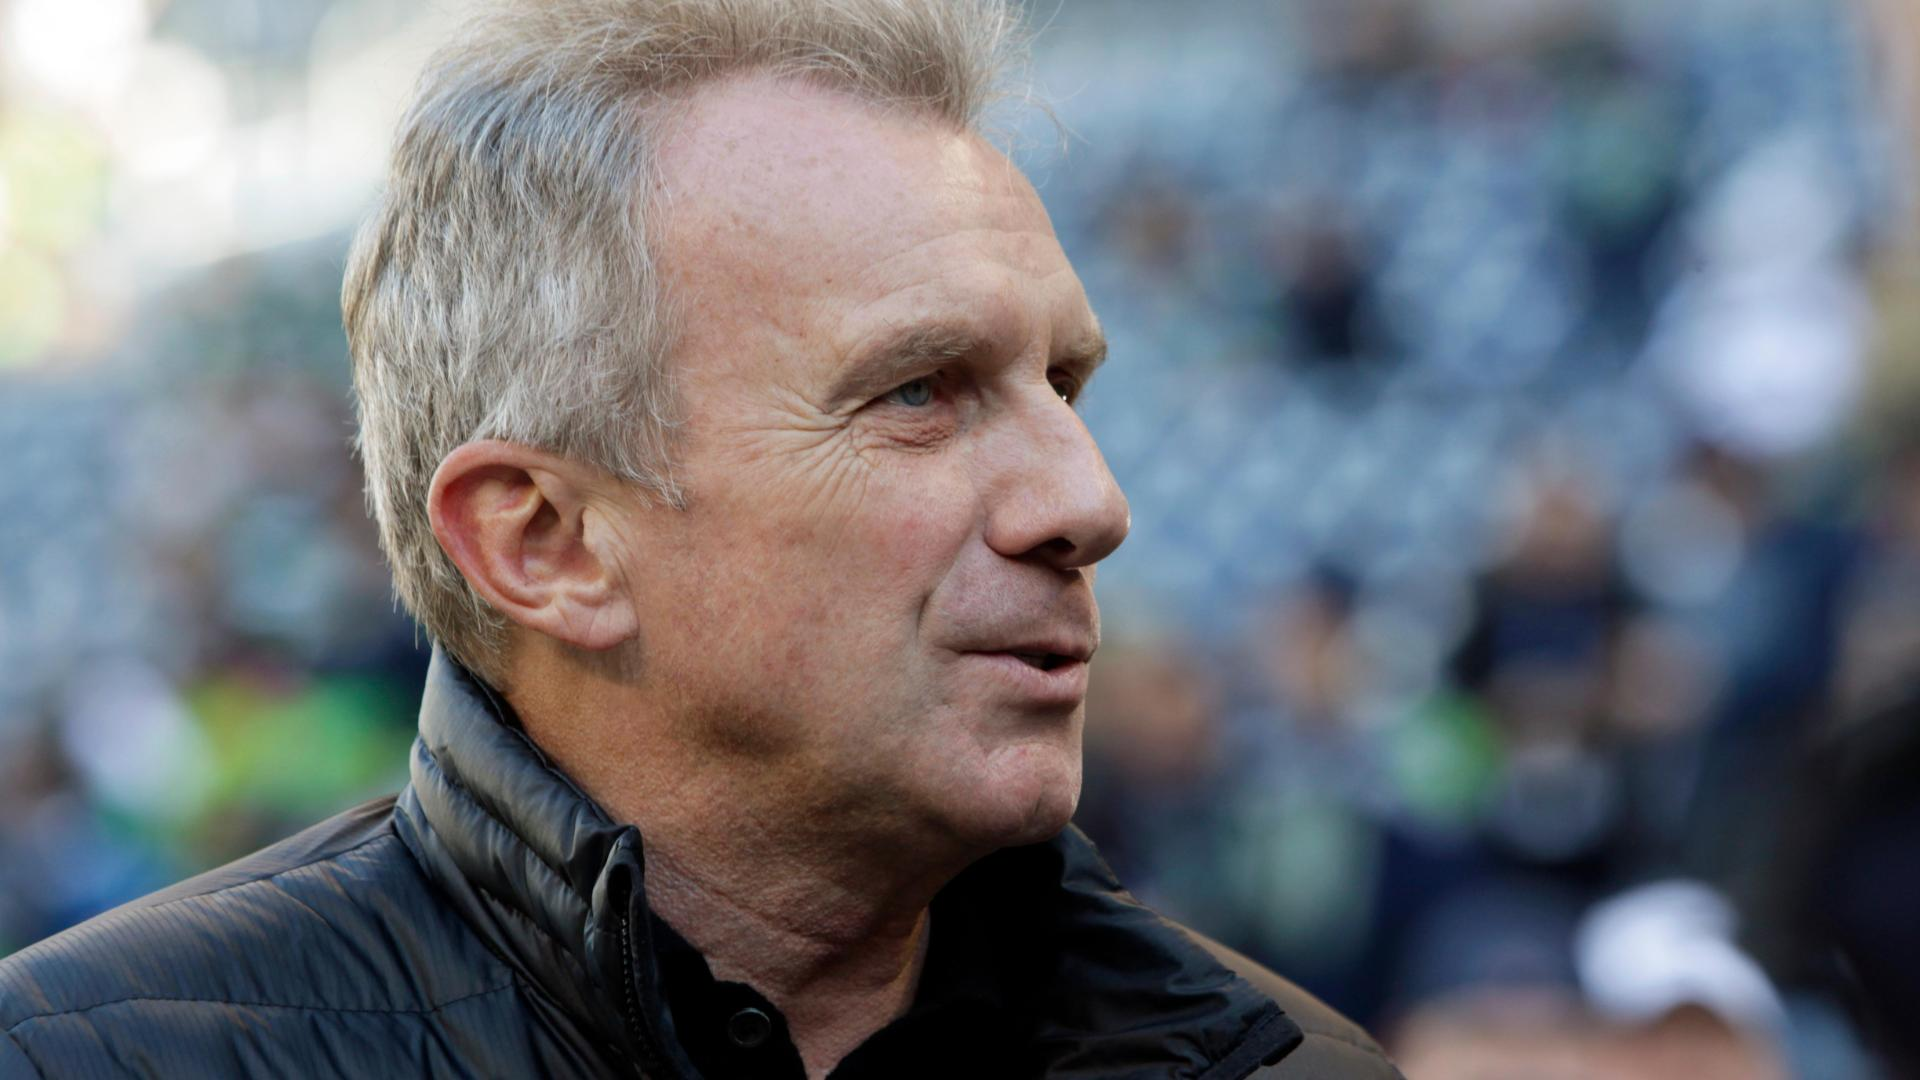 Video - Joe Montana opens up about physical troubles